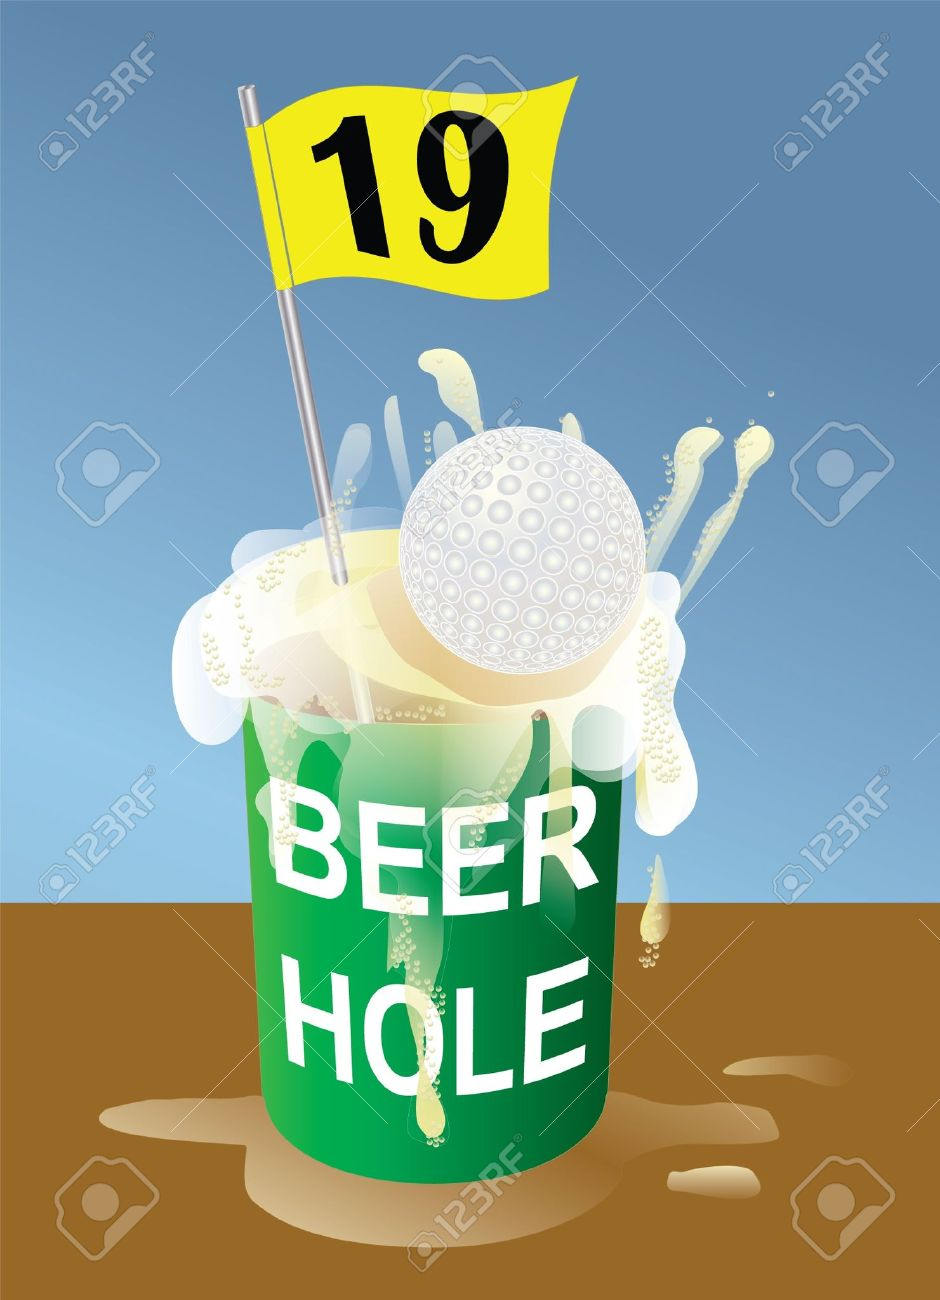 Beer 19th hole on golf course illustration. Hole-in-one. Stock Vector - 10527925